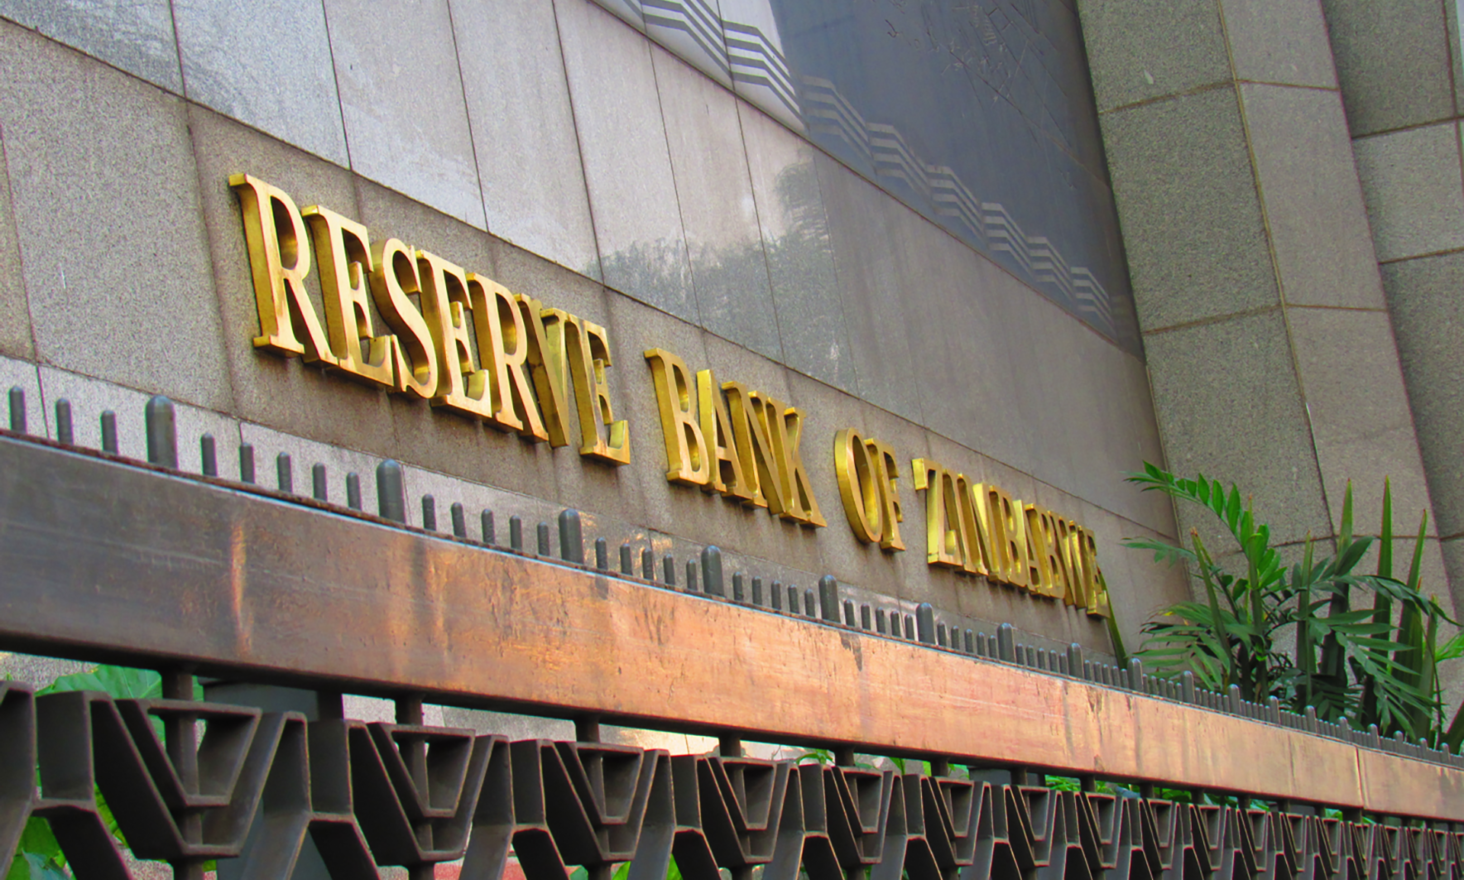 Reserve Bank of Zimbabwe: 'Bitcoin is Not Legal'